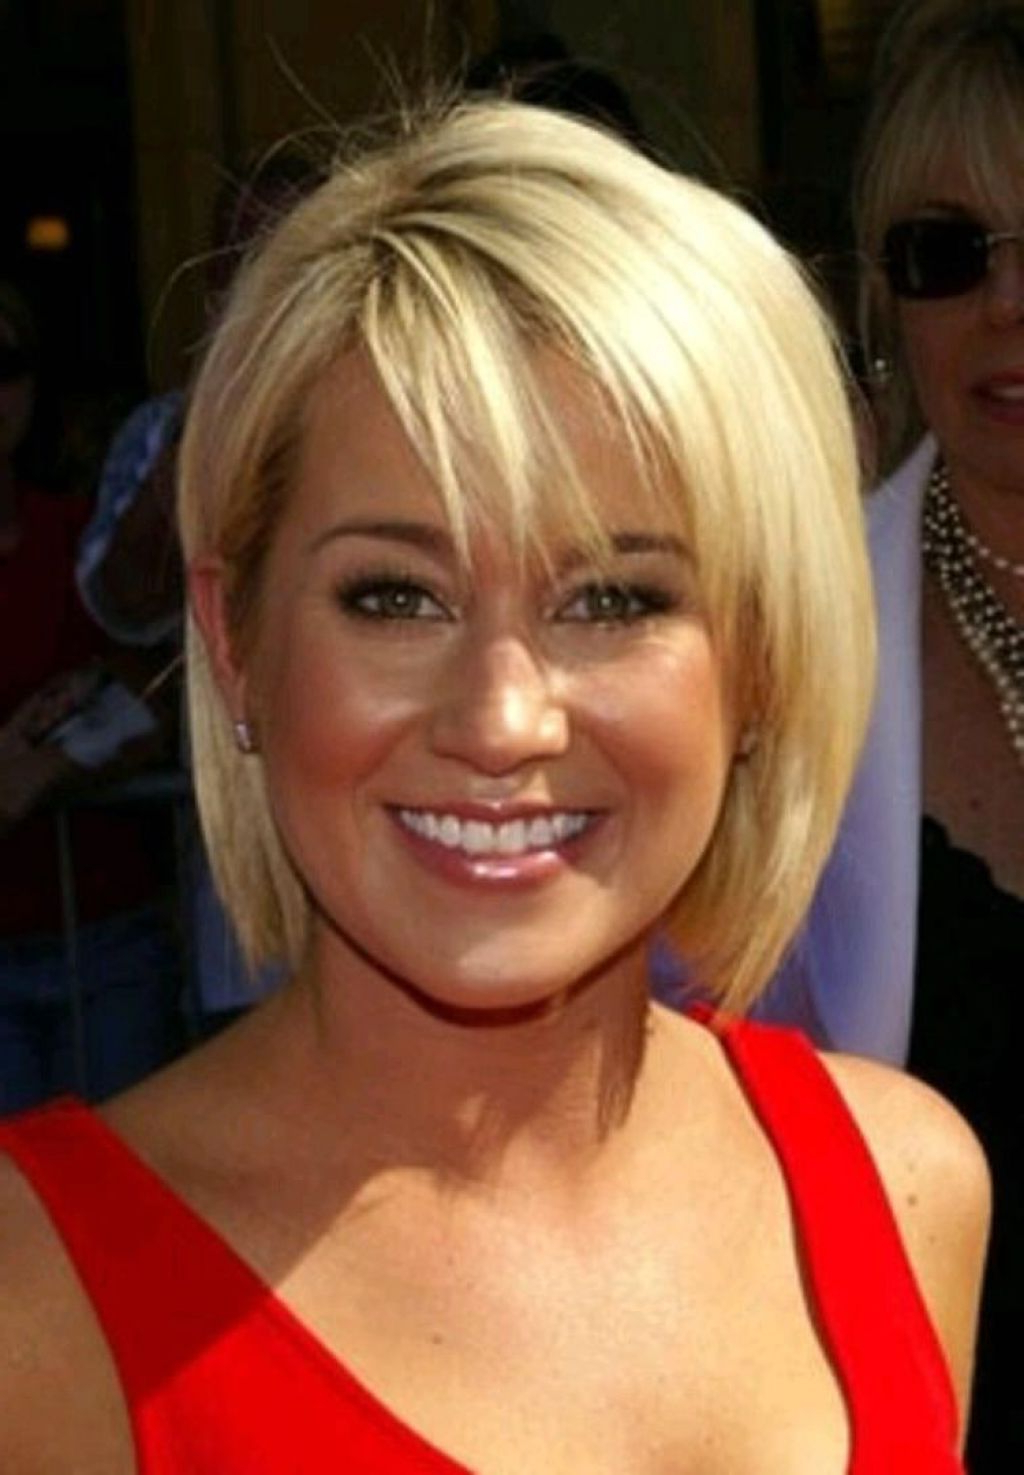 ? 24+ Best Short Bob Hairstyles For Thin Hair: Short Hairstyles For Pertaining To Short Hairstyles For Thinning Hair (View 13 of 25)